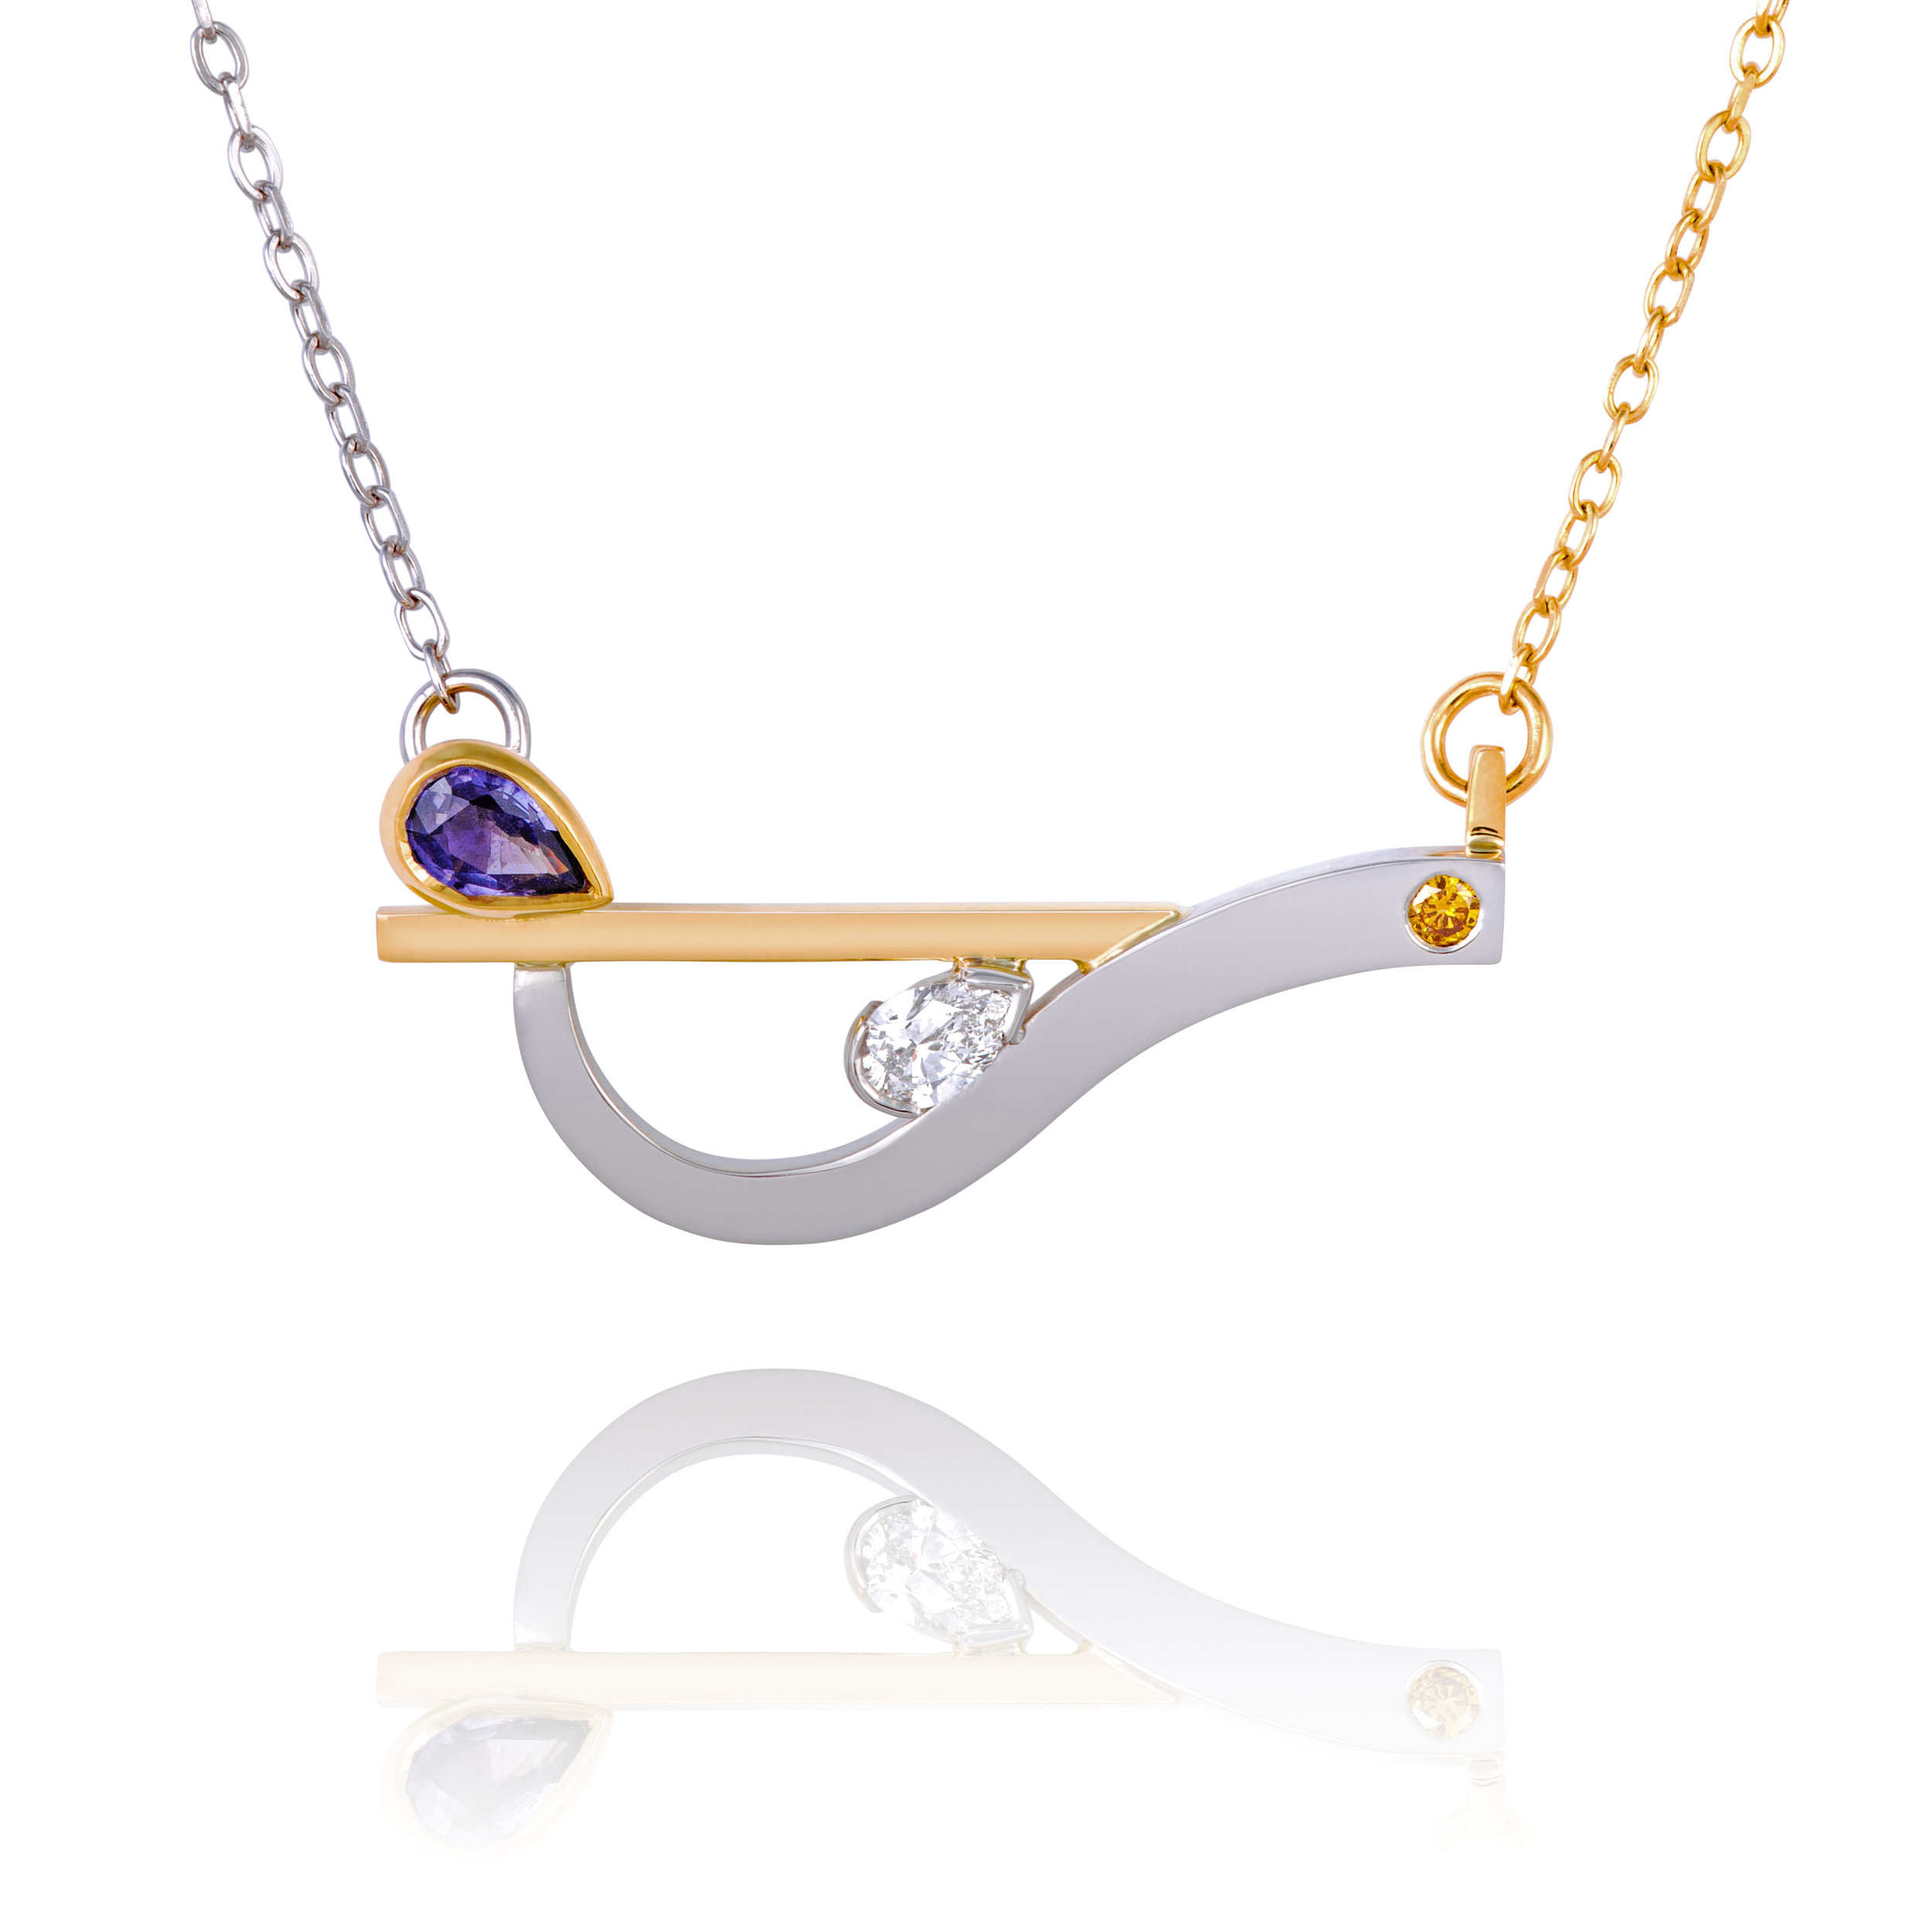 18ct yellow gold and palladium pendant set with a purple sapphire, a natural yellow diamond and a pear shape diamond - see available to buy